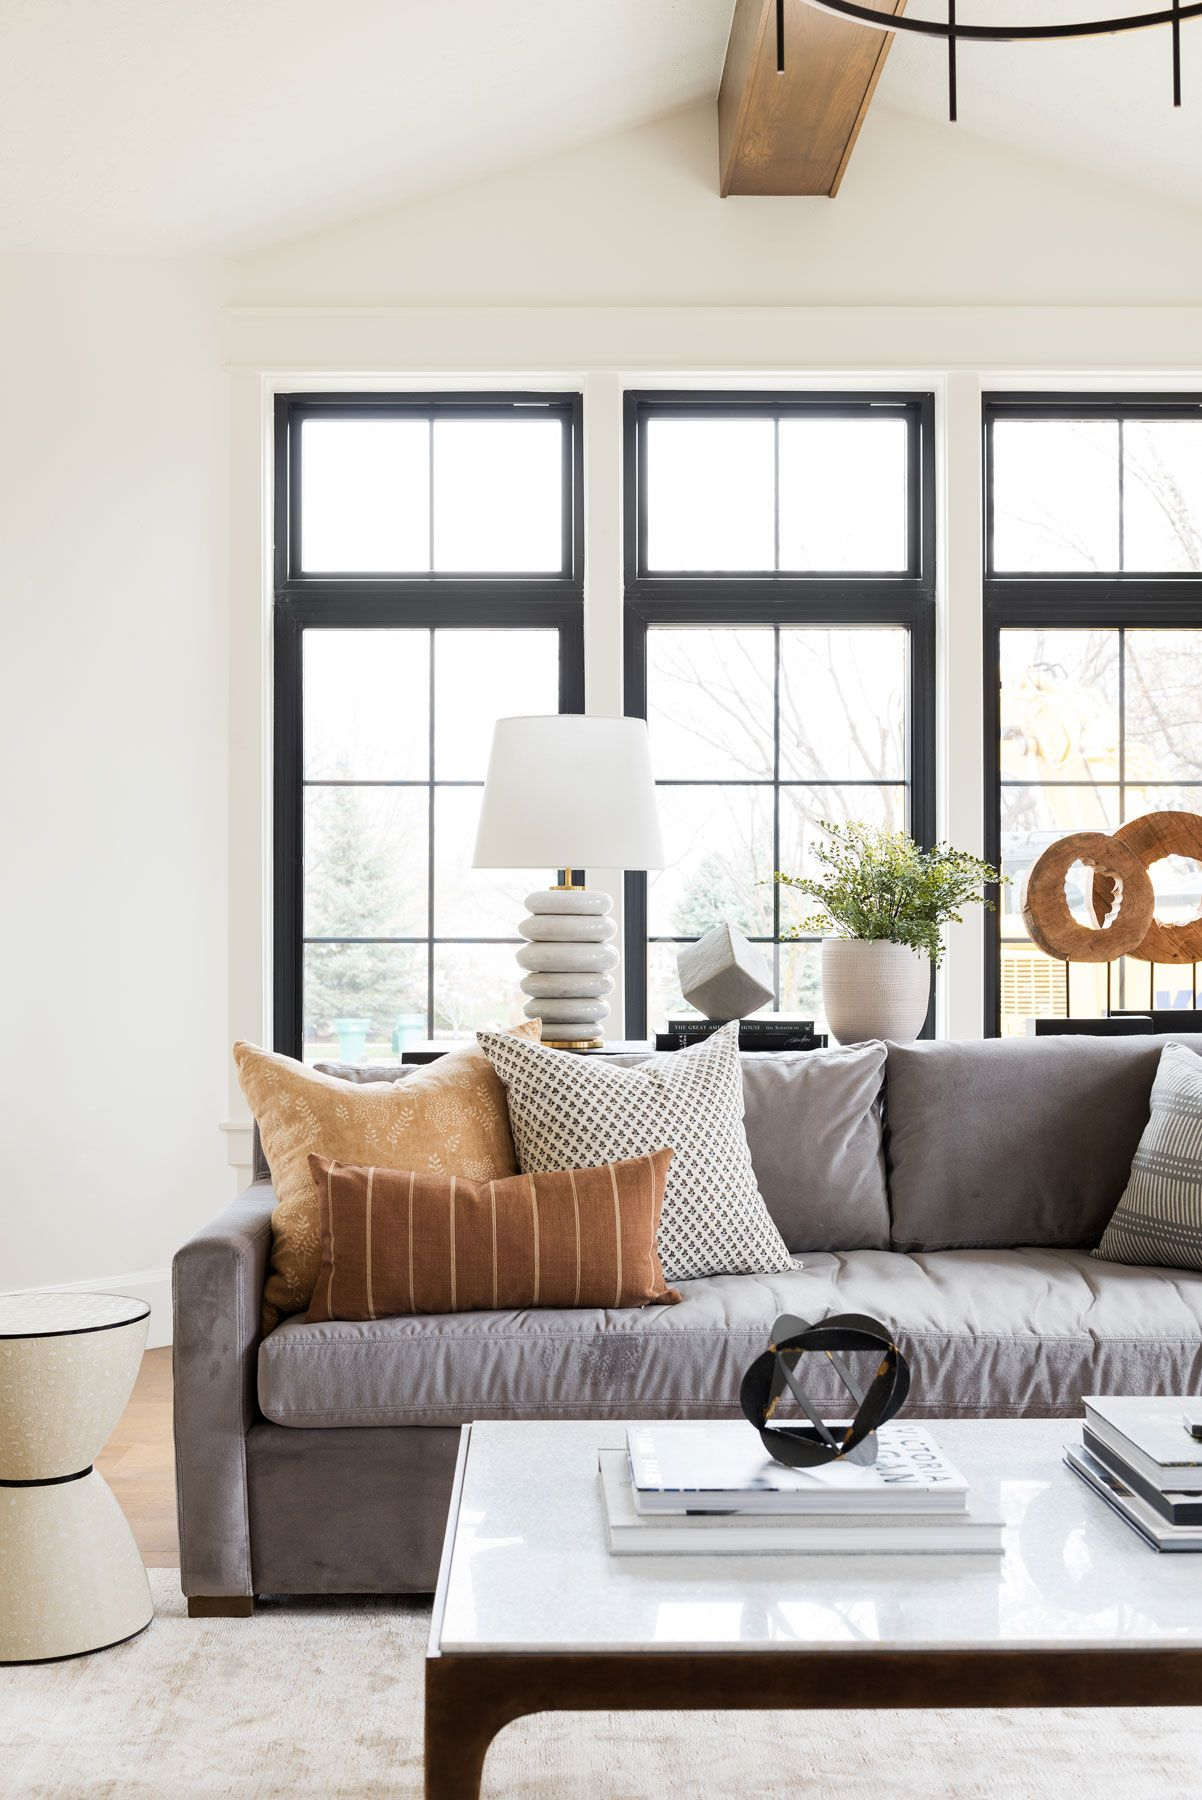 Northridge Remodel: The Living Spaces | Casual living ... on Fireplace Casual Living id=65606